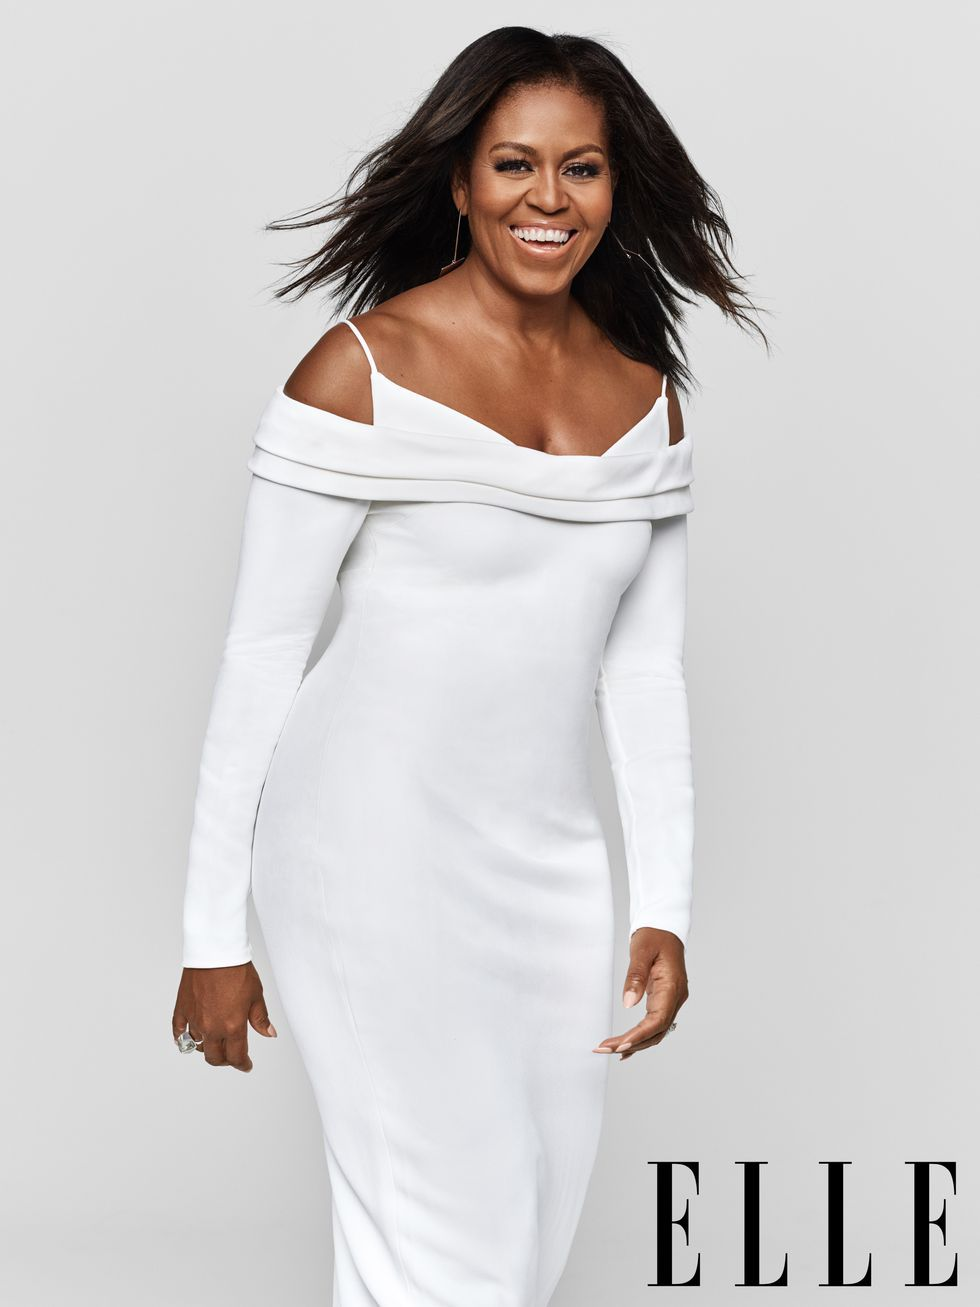 Michelle Obama ELLE US December 2018 (3).jpg